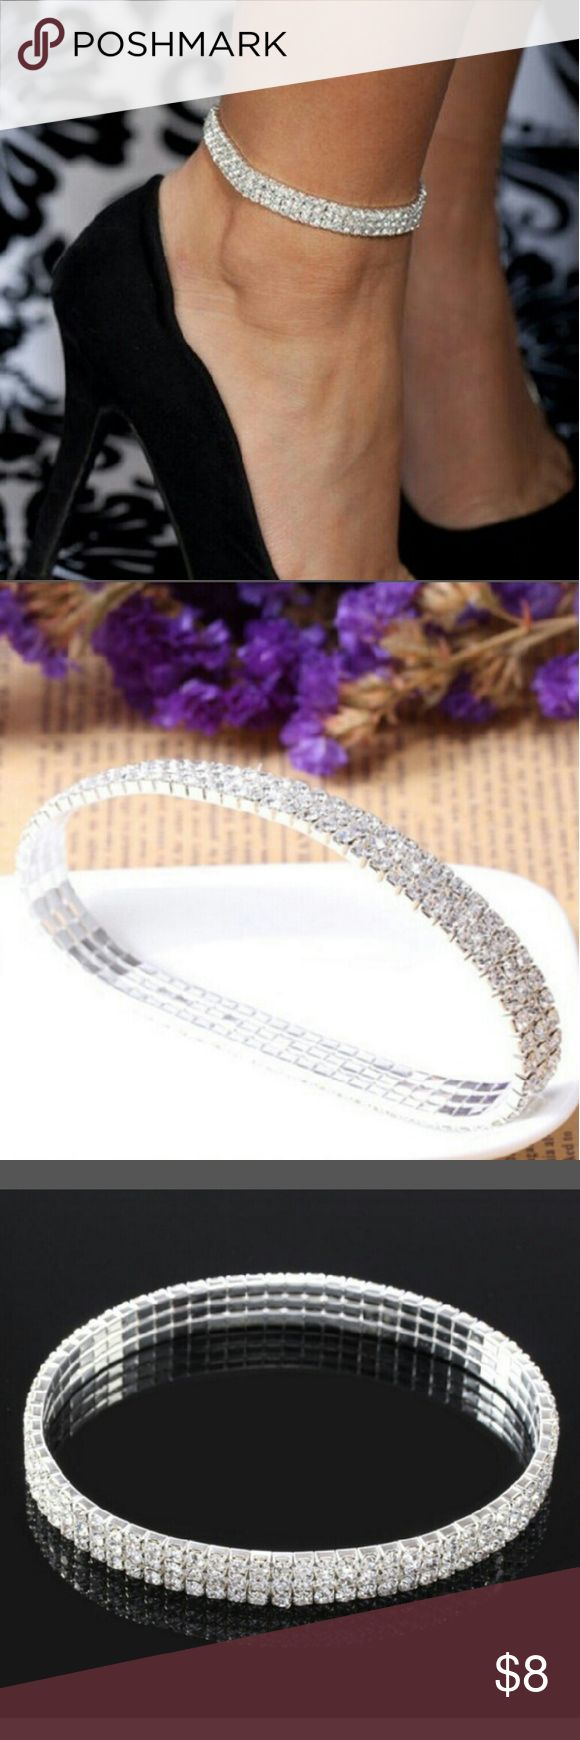 New Beautiful Diamond Ankle Bracelet New Silver color and diamonds Ankle Bracelet. New never used just like the photos really cute. Its a stretchy ankle bracelet to adjust to your ankle. New very cute never used. Jewelry